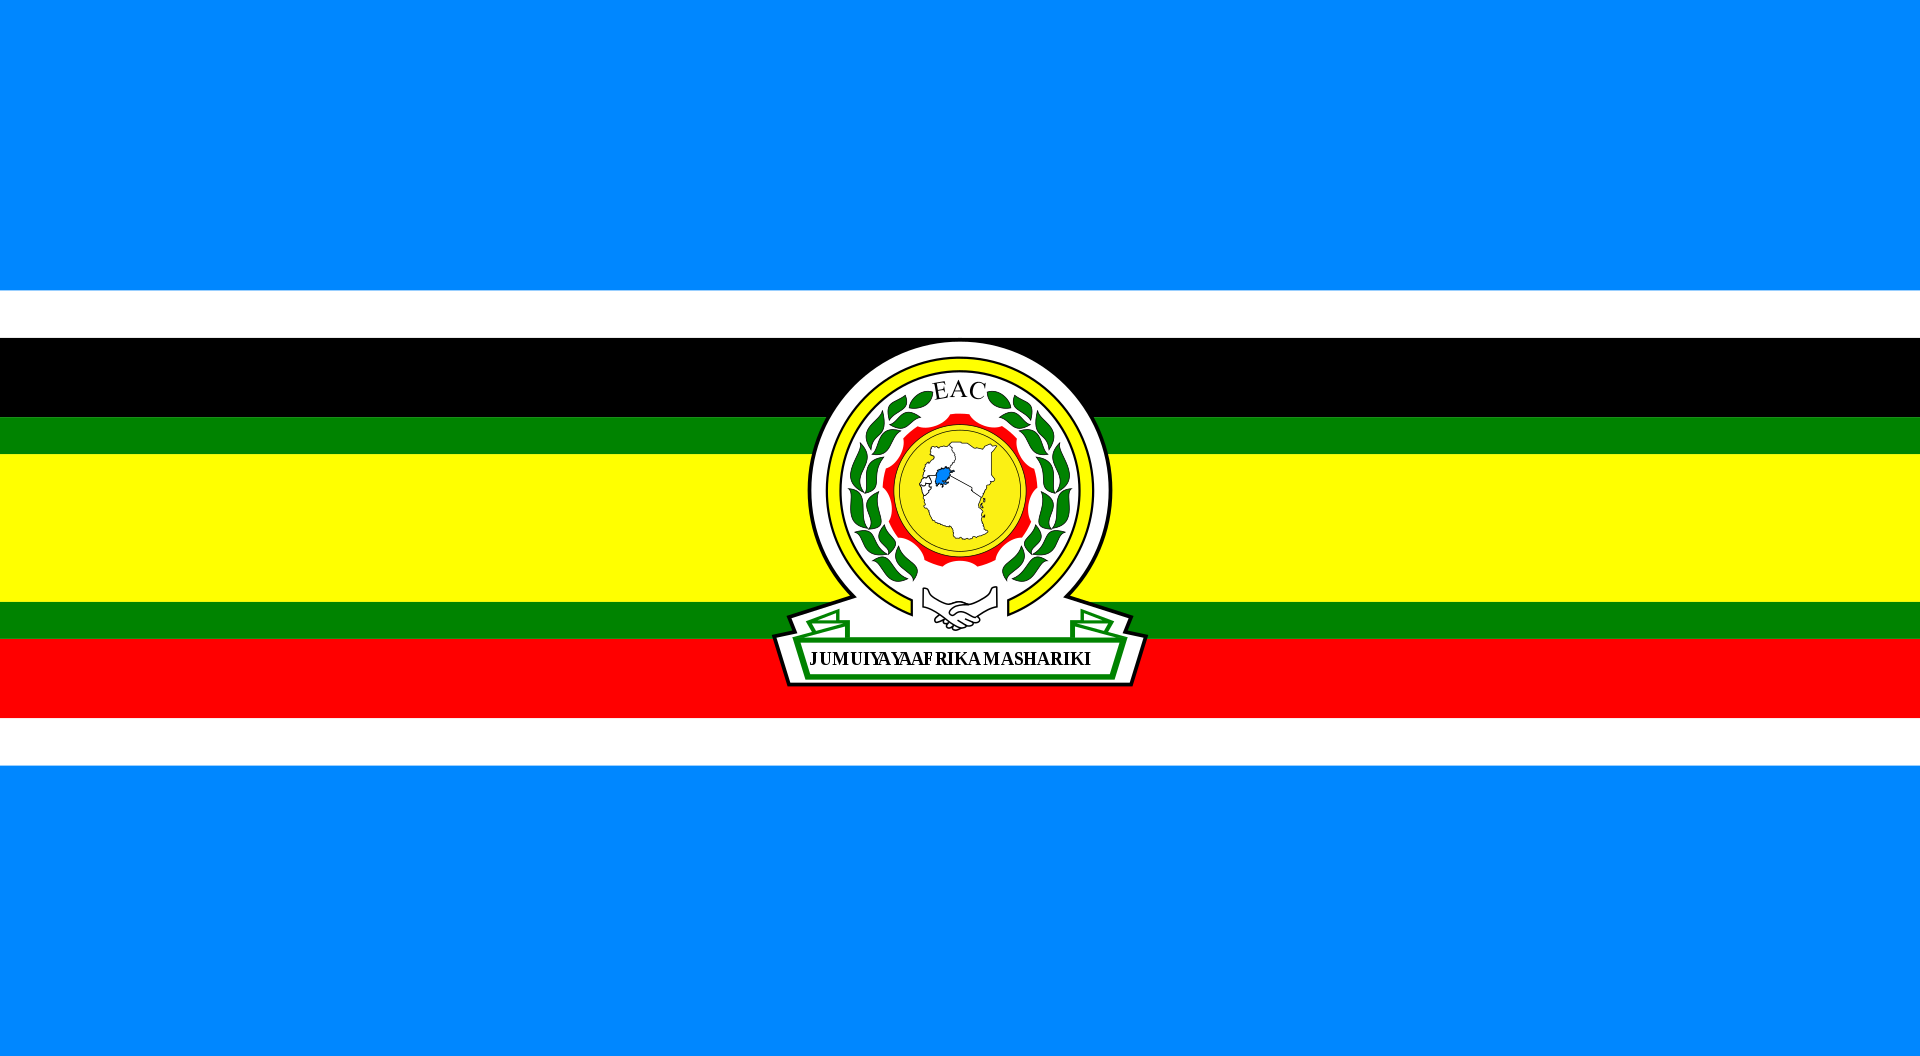 Flag of East African Community